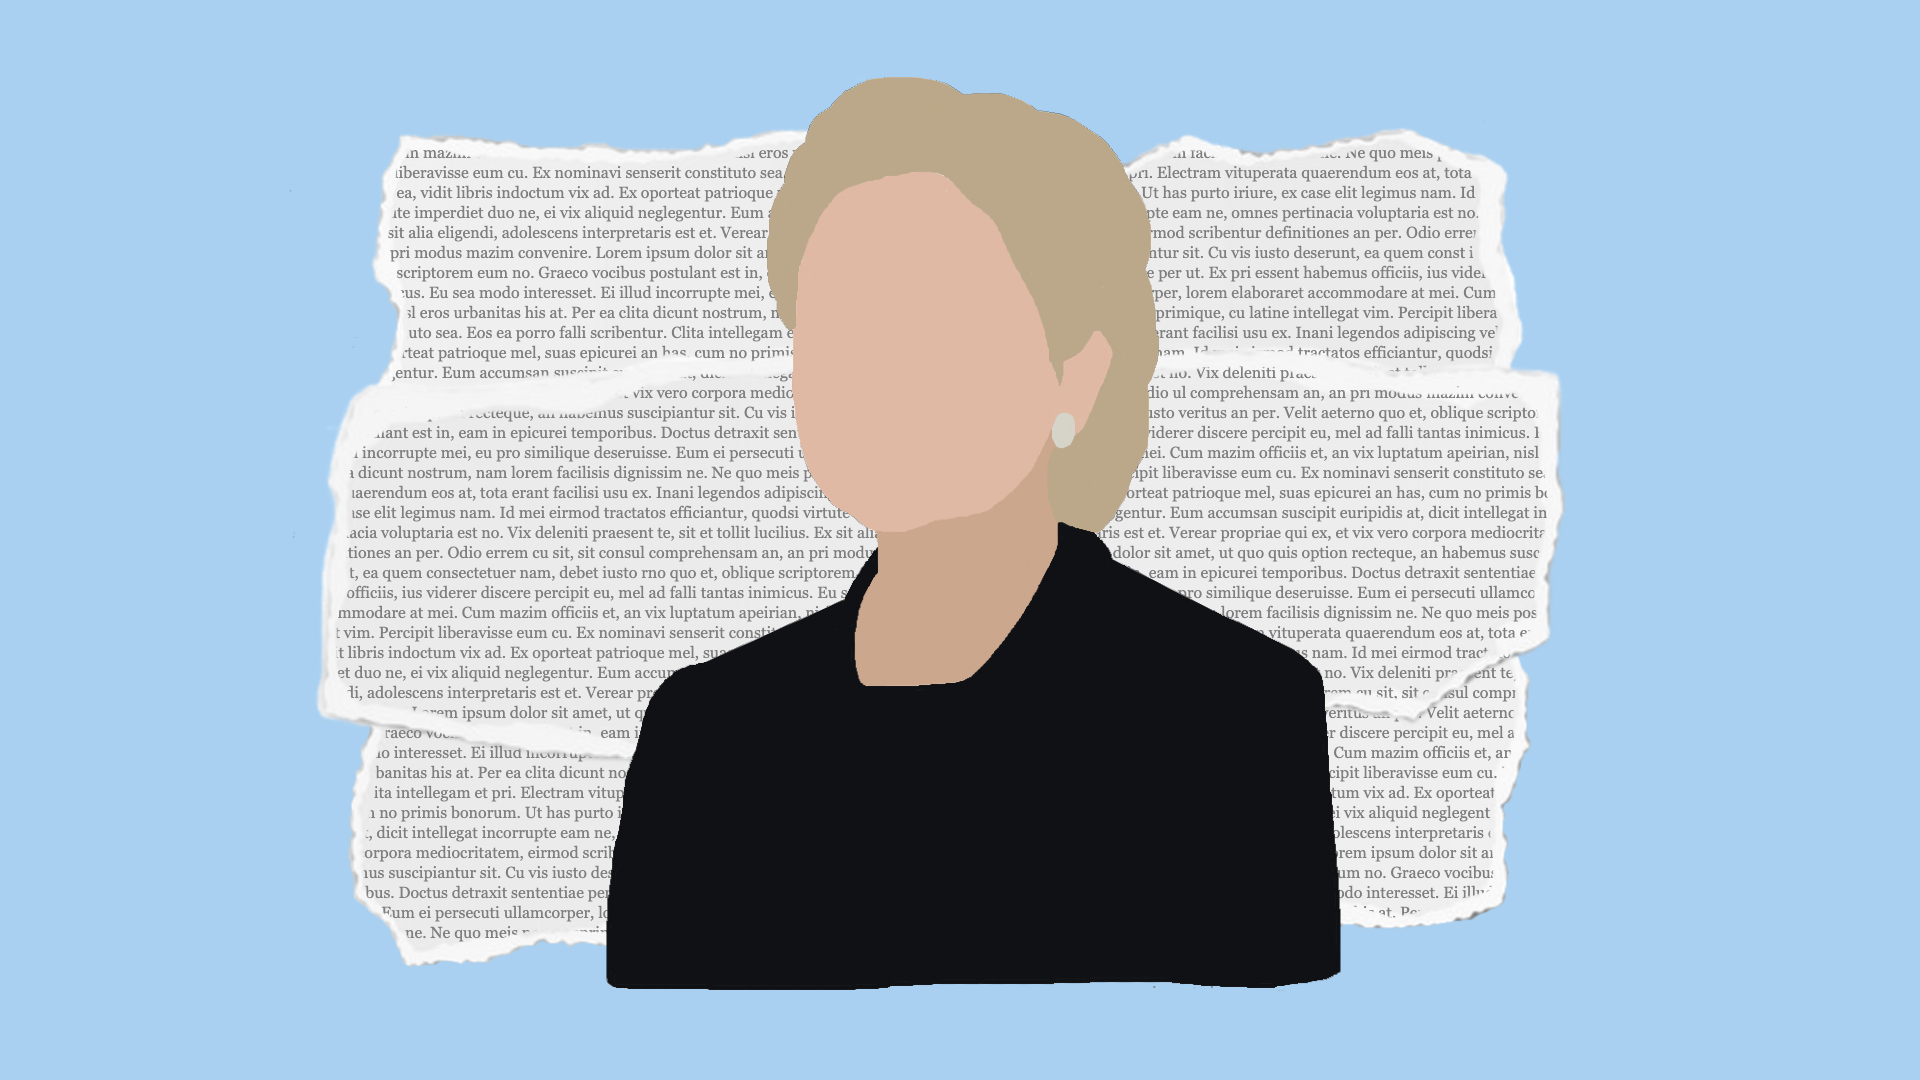 Portrait of Hillary Clinton against a light blue background.